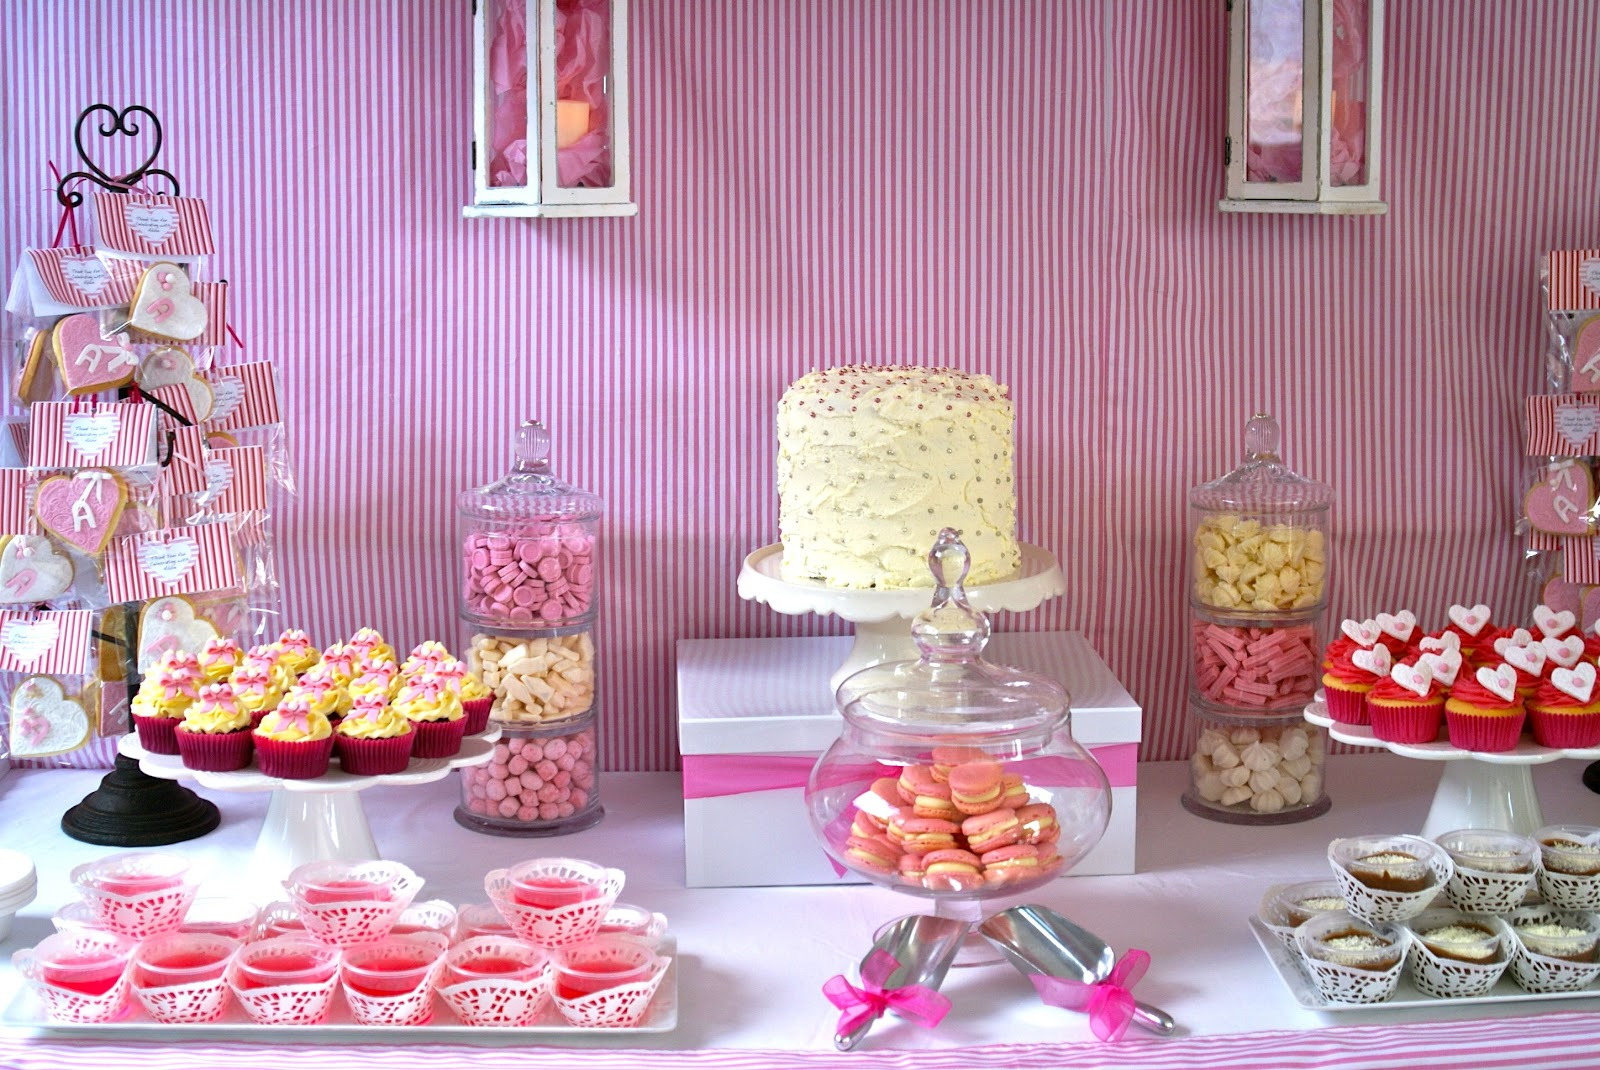 Les Enfants, Stylish Childrenu0027s Parties Blog: Real Party   A First Birthday  U0026 Christening